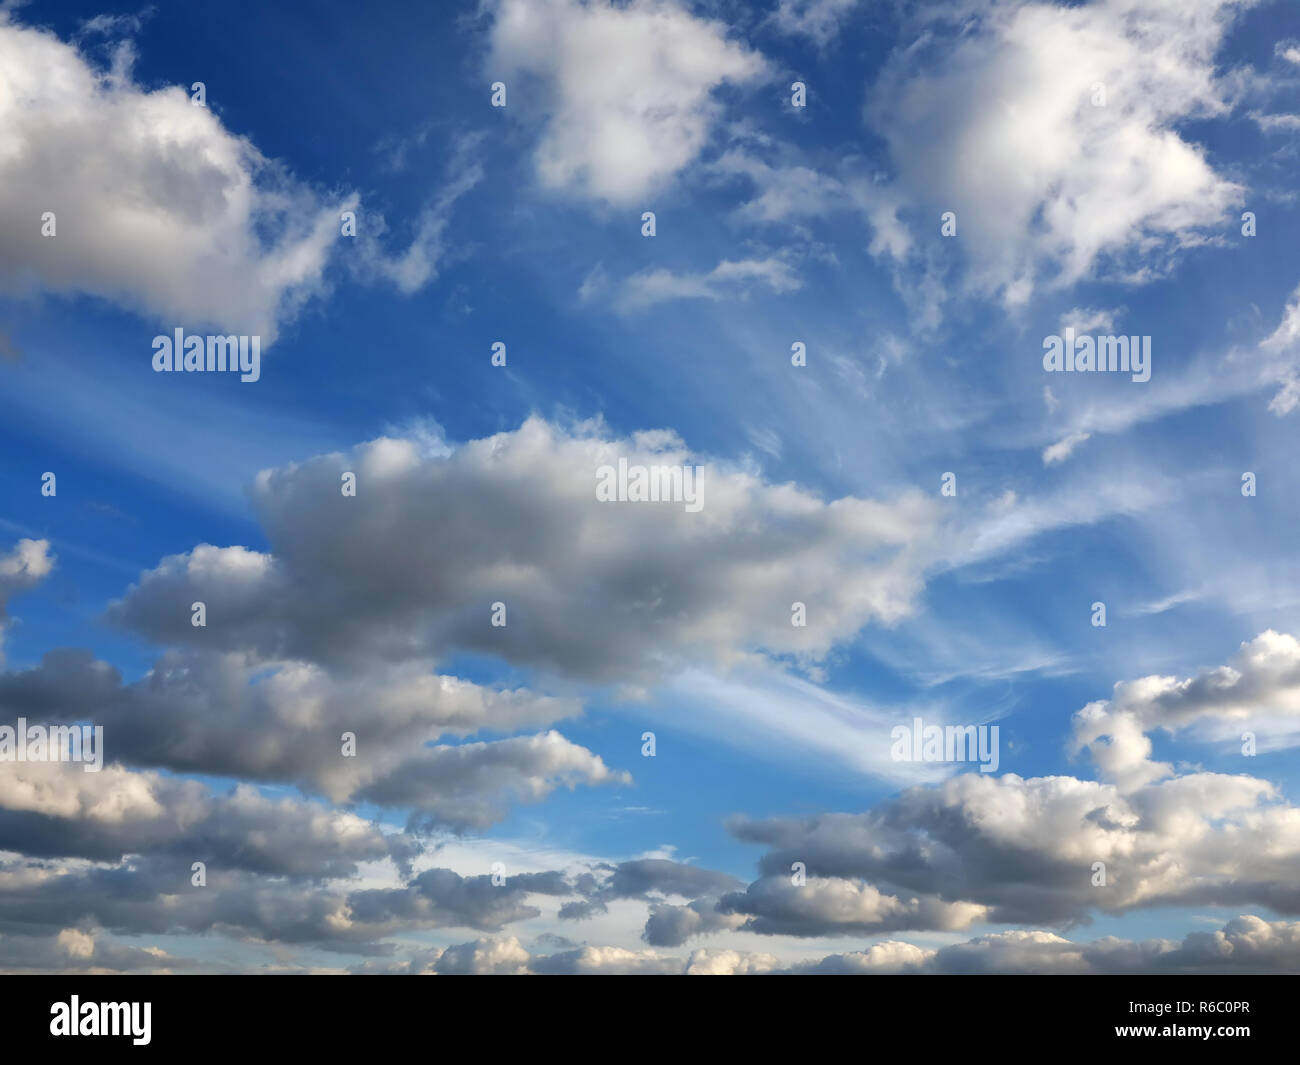 Clouds on the sky - Stock Image